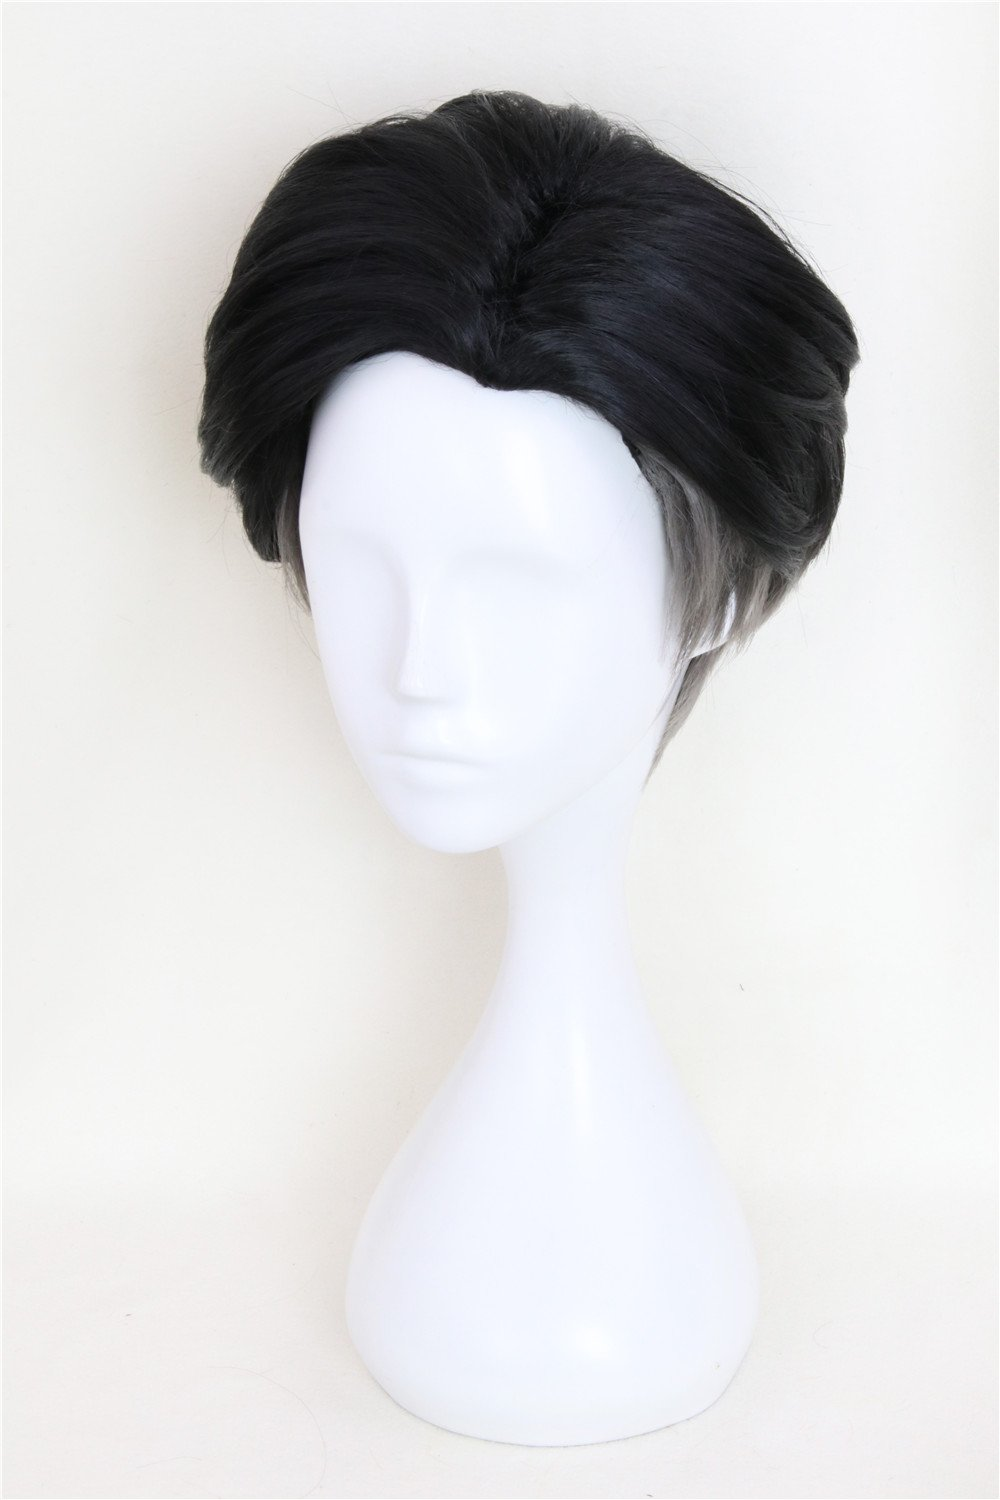 5422110b8 Amazon.com: Xingwang Queen Anime Cosplay Wig Short Black Gradient Gray Hair  Synthetic Slicked-back Wigs with free Cap: Beauty